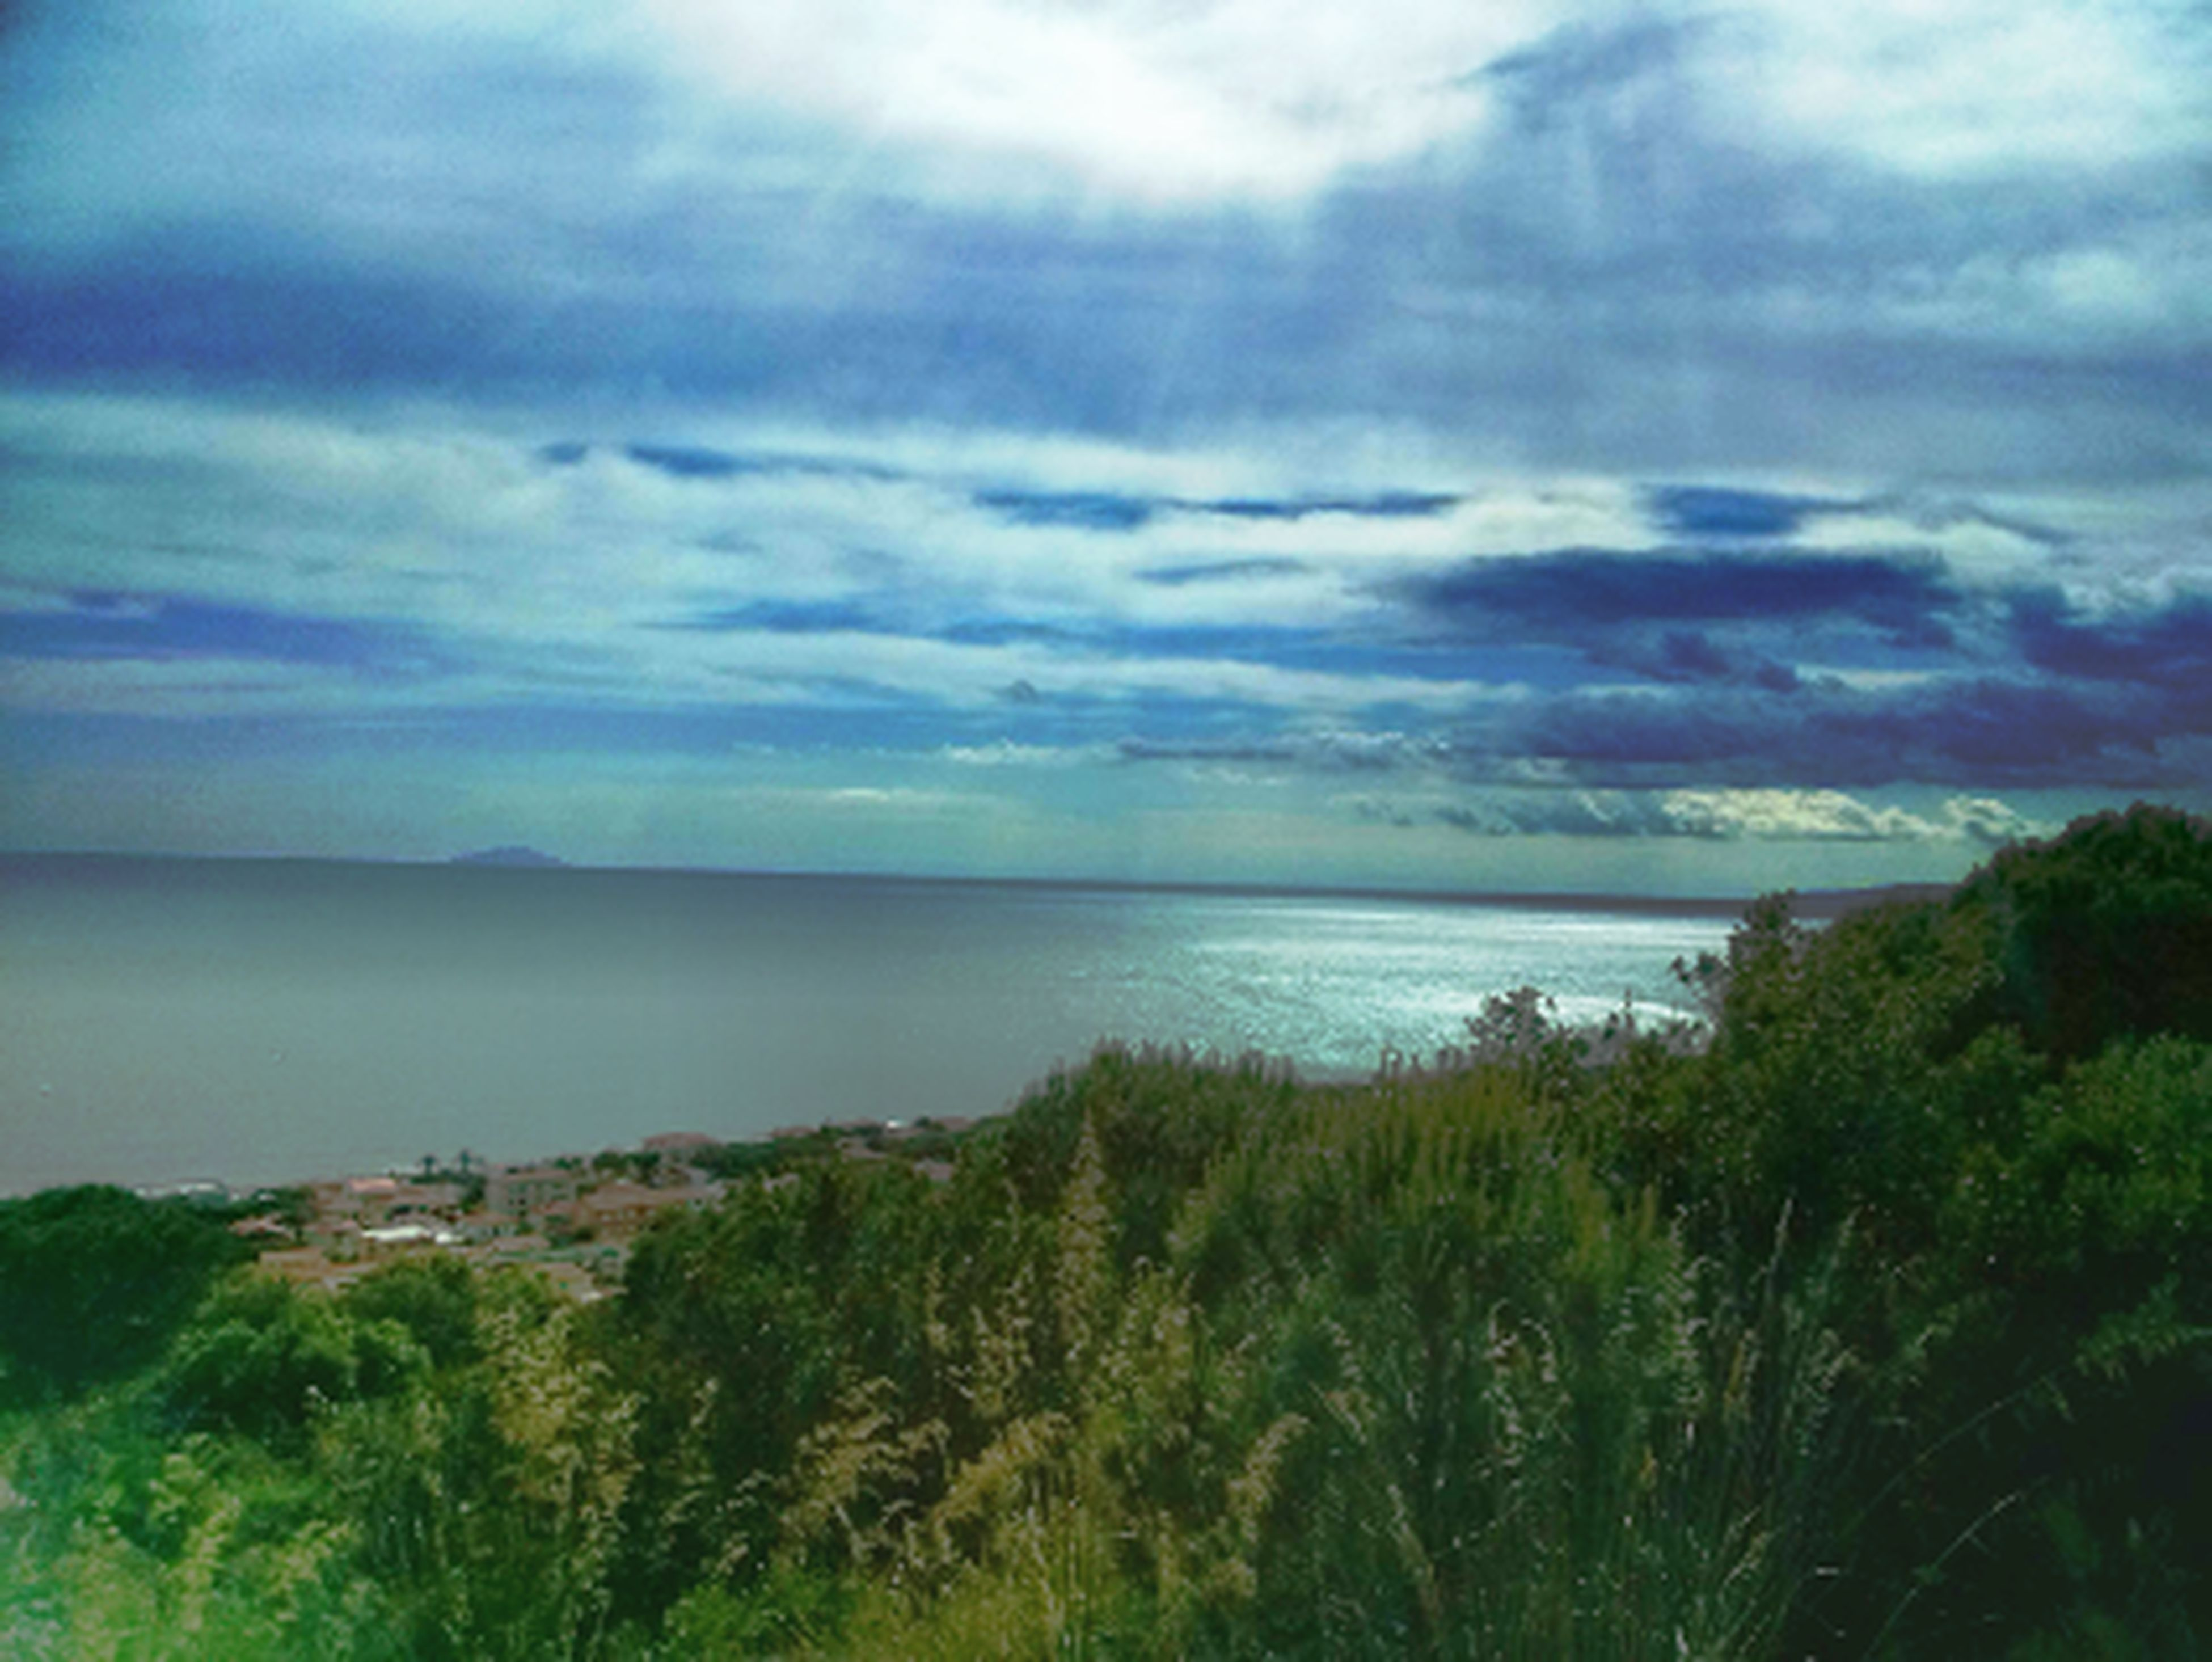 sky, sea, horizon over water, tranquil scene, water, scenics, tranquility, cloud - sky, beauty in nature, cloudy, nature, cloud, tree, idyllic, plant, beach, growth, weather, outdoors, green color